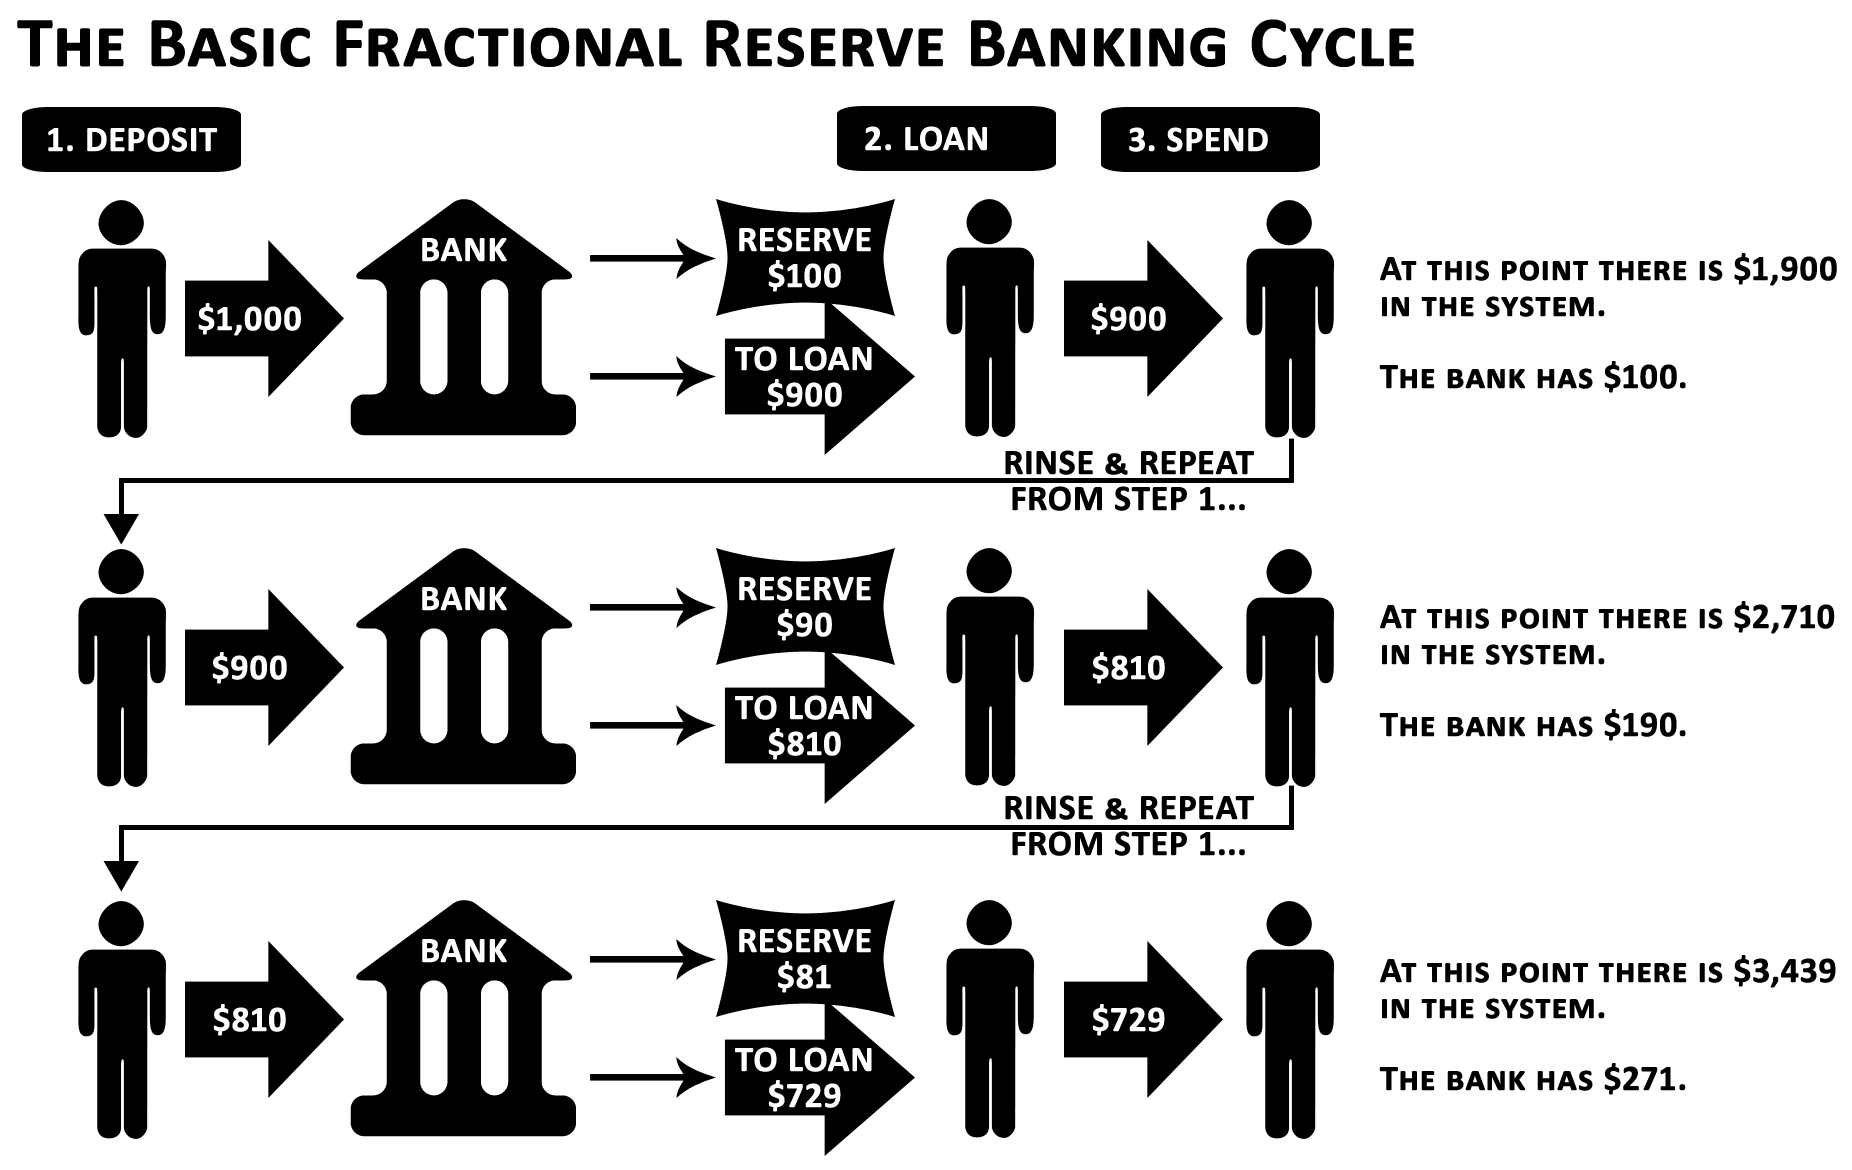 1628d37c315165f6af9675c28a4eaae5 - Fractional Reserve Cryptocurrency Bank — 210 Million Bitcoins Supply